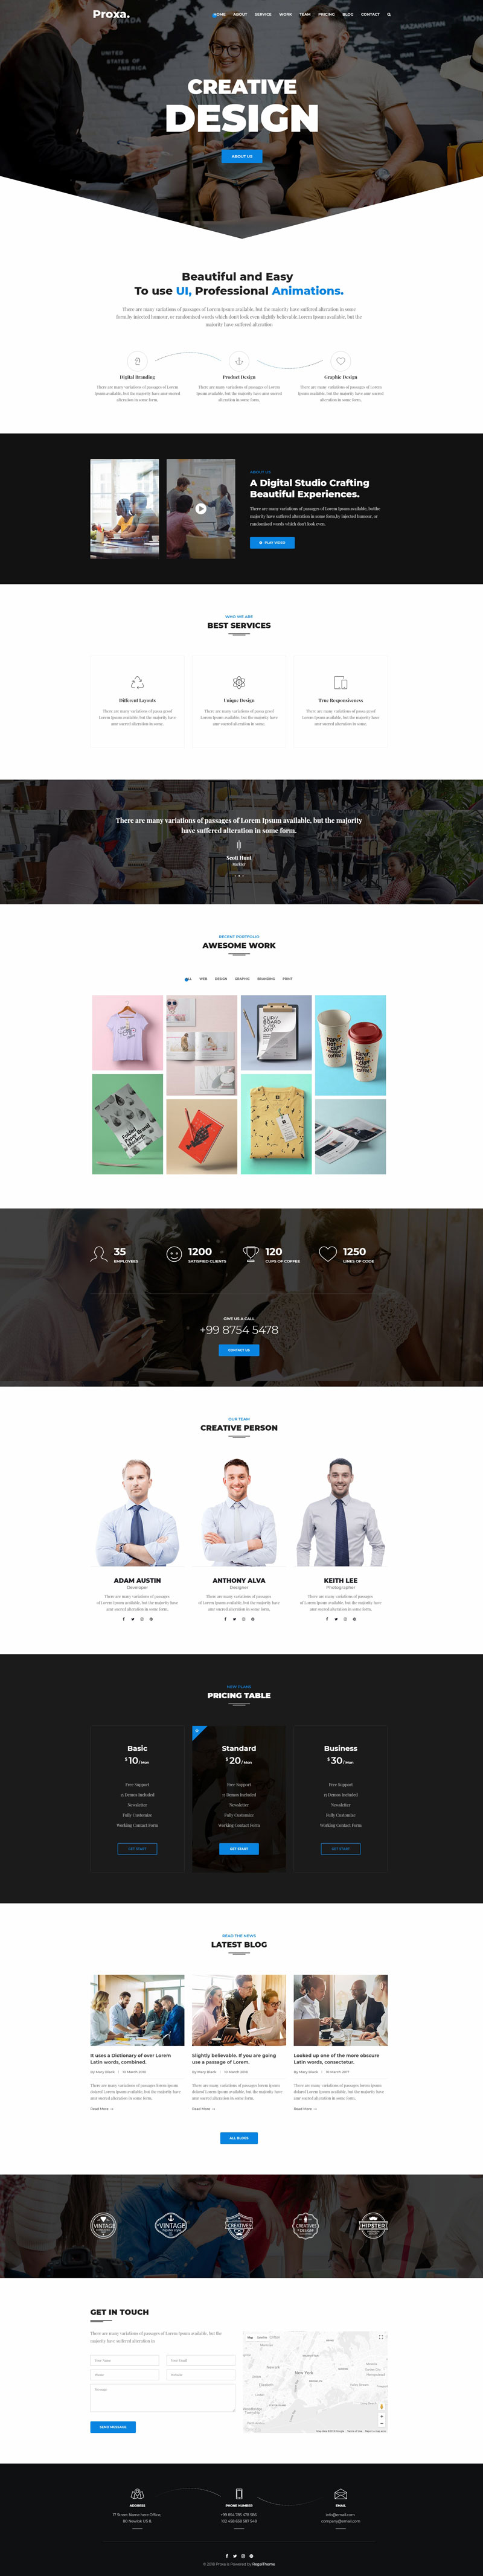 Proxa - One Page Parallax on Inspirationde